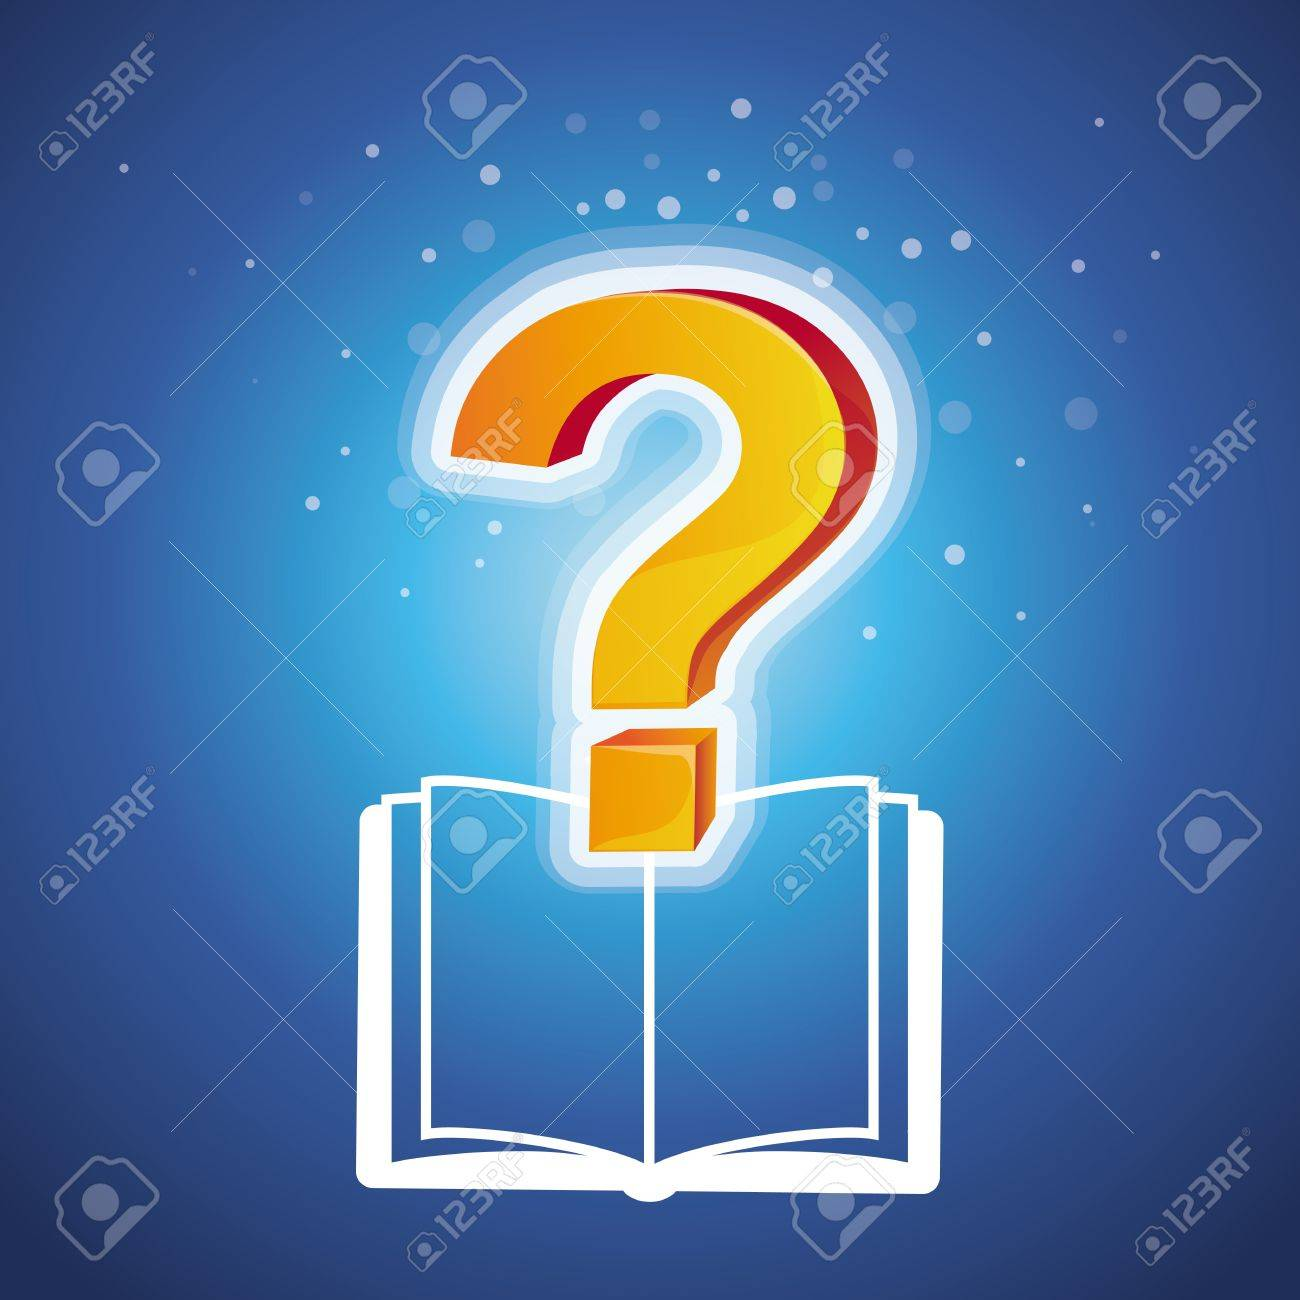 education concept with book icon and question mark Stock Vector - 17718523